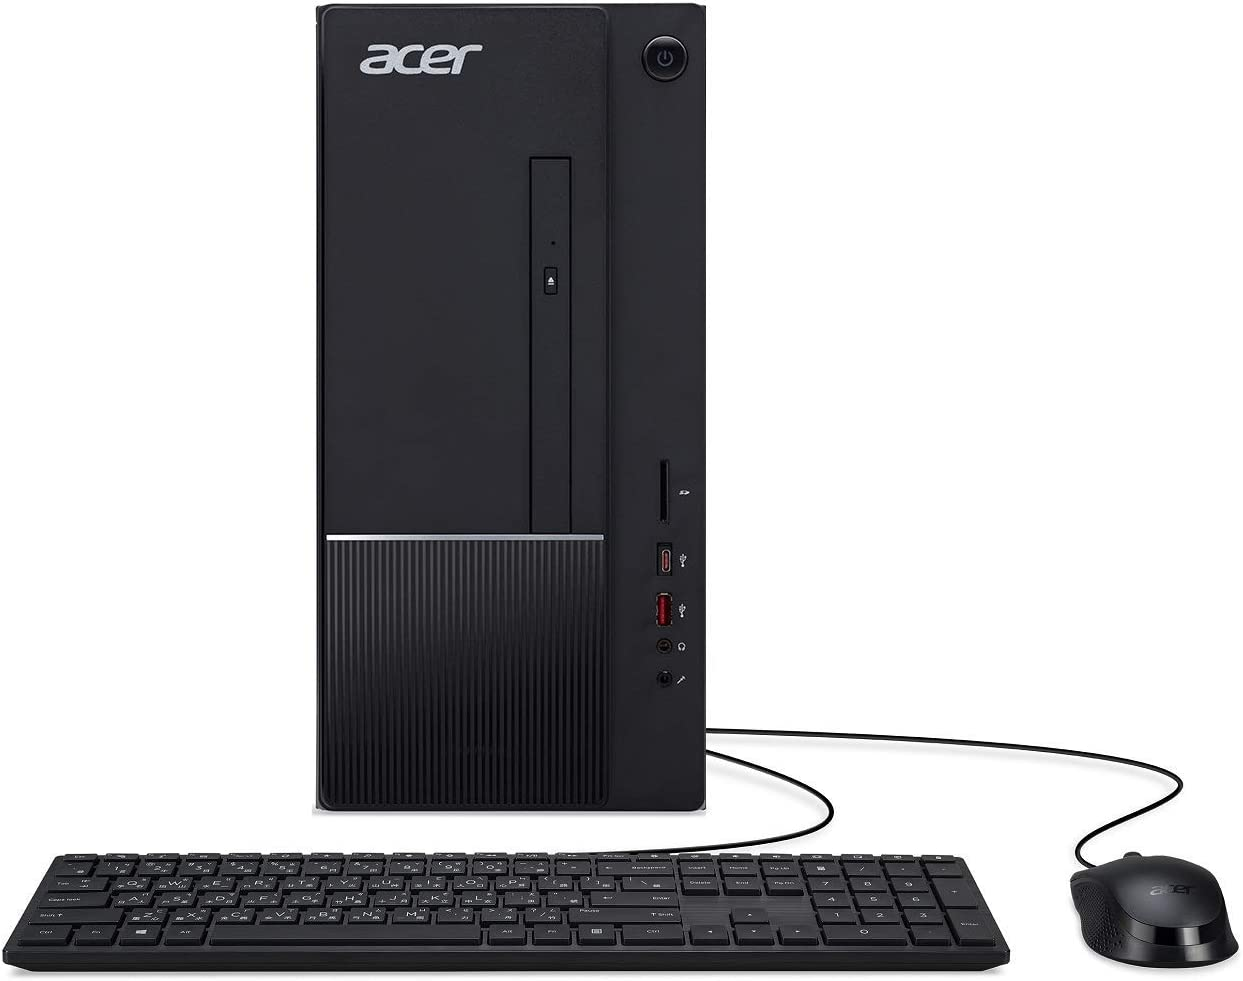 Acer Aspire TC-865-UR15 Desktop, 9th Gen Intel Core i5-9400, 8GB DDR4, 512GB SSD, 8X DVD, 802.11ac WiFi, USB 3.1 Type C, Windows 10 Home (Renewed)